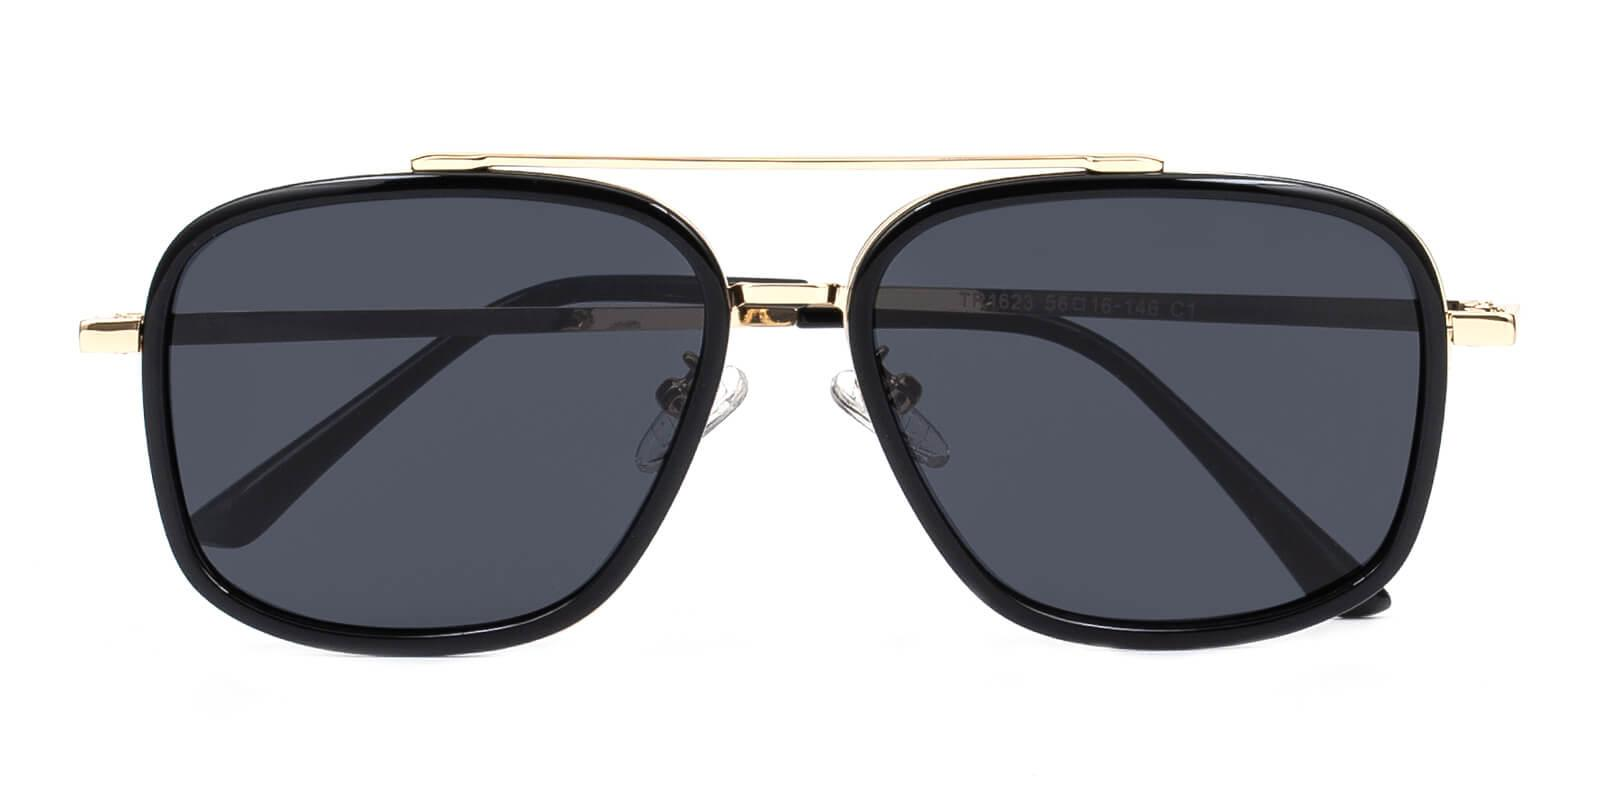 Clinton-Black-Aviator-Metal / Combination / TR-Sunglasses-detail